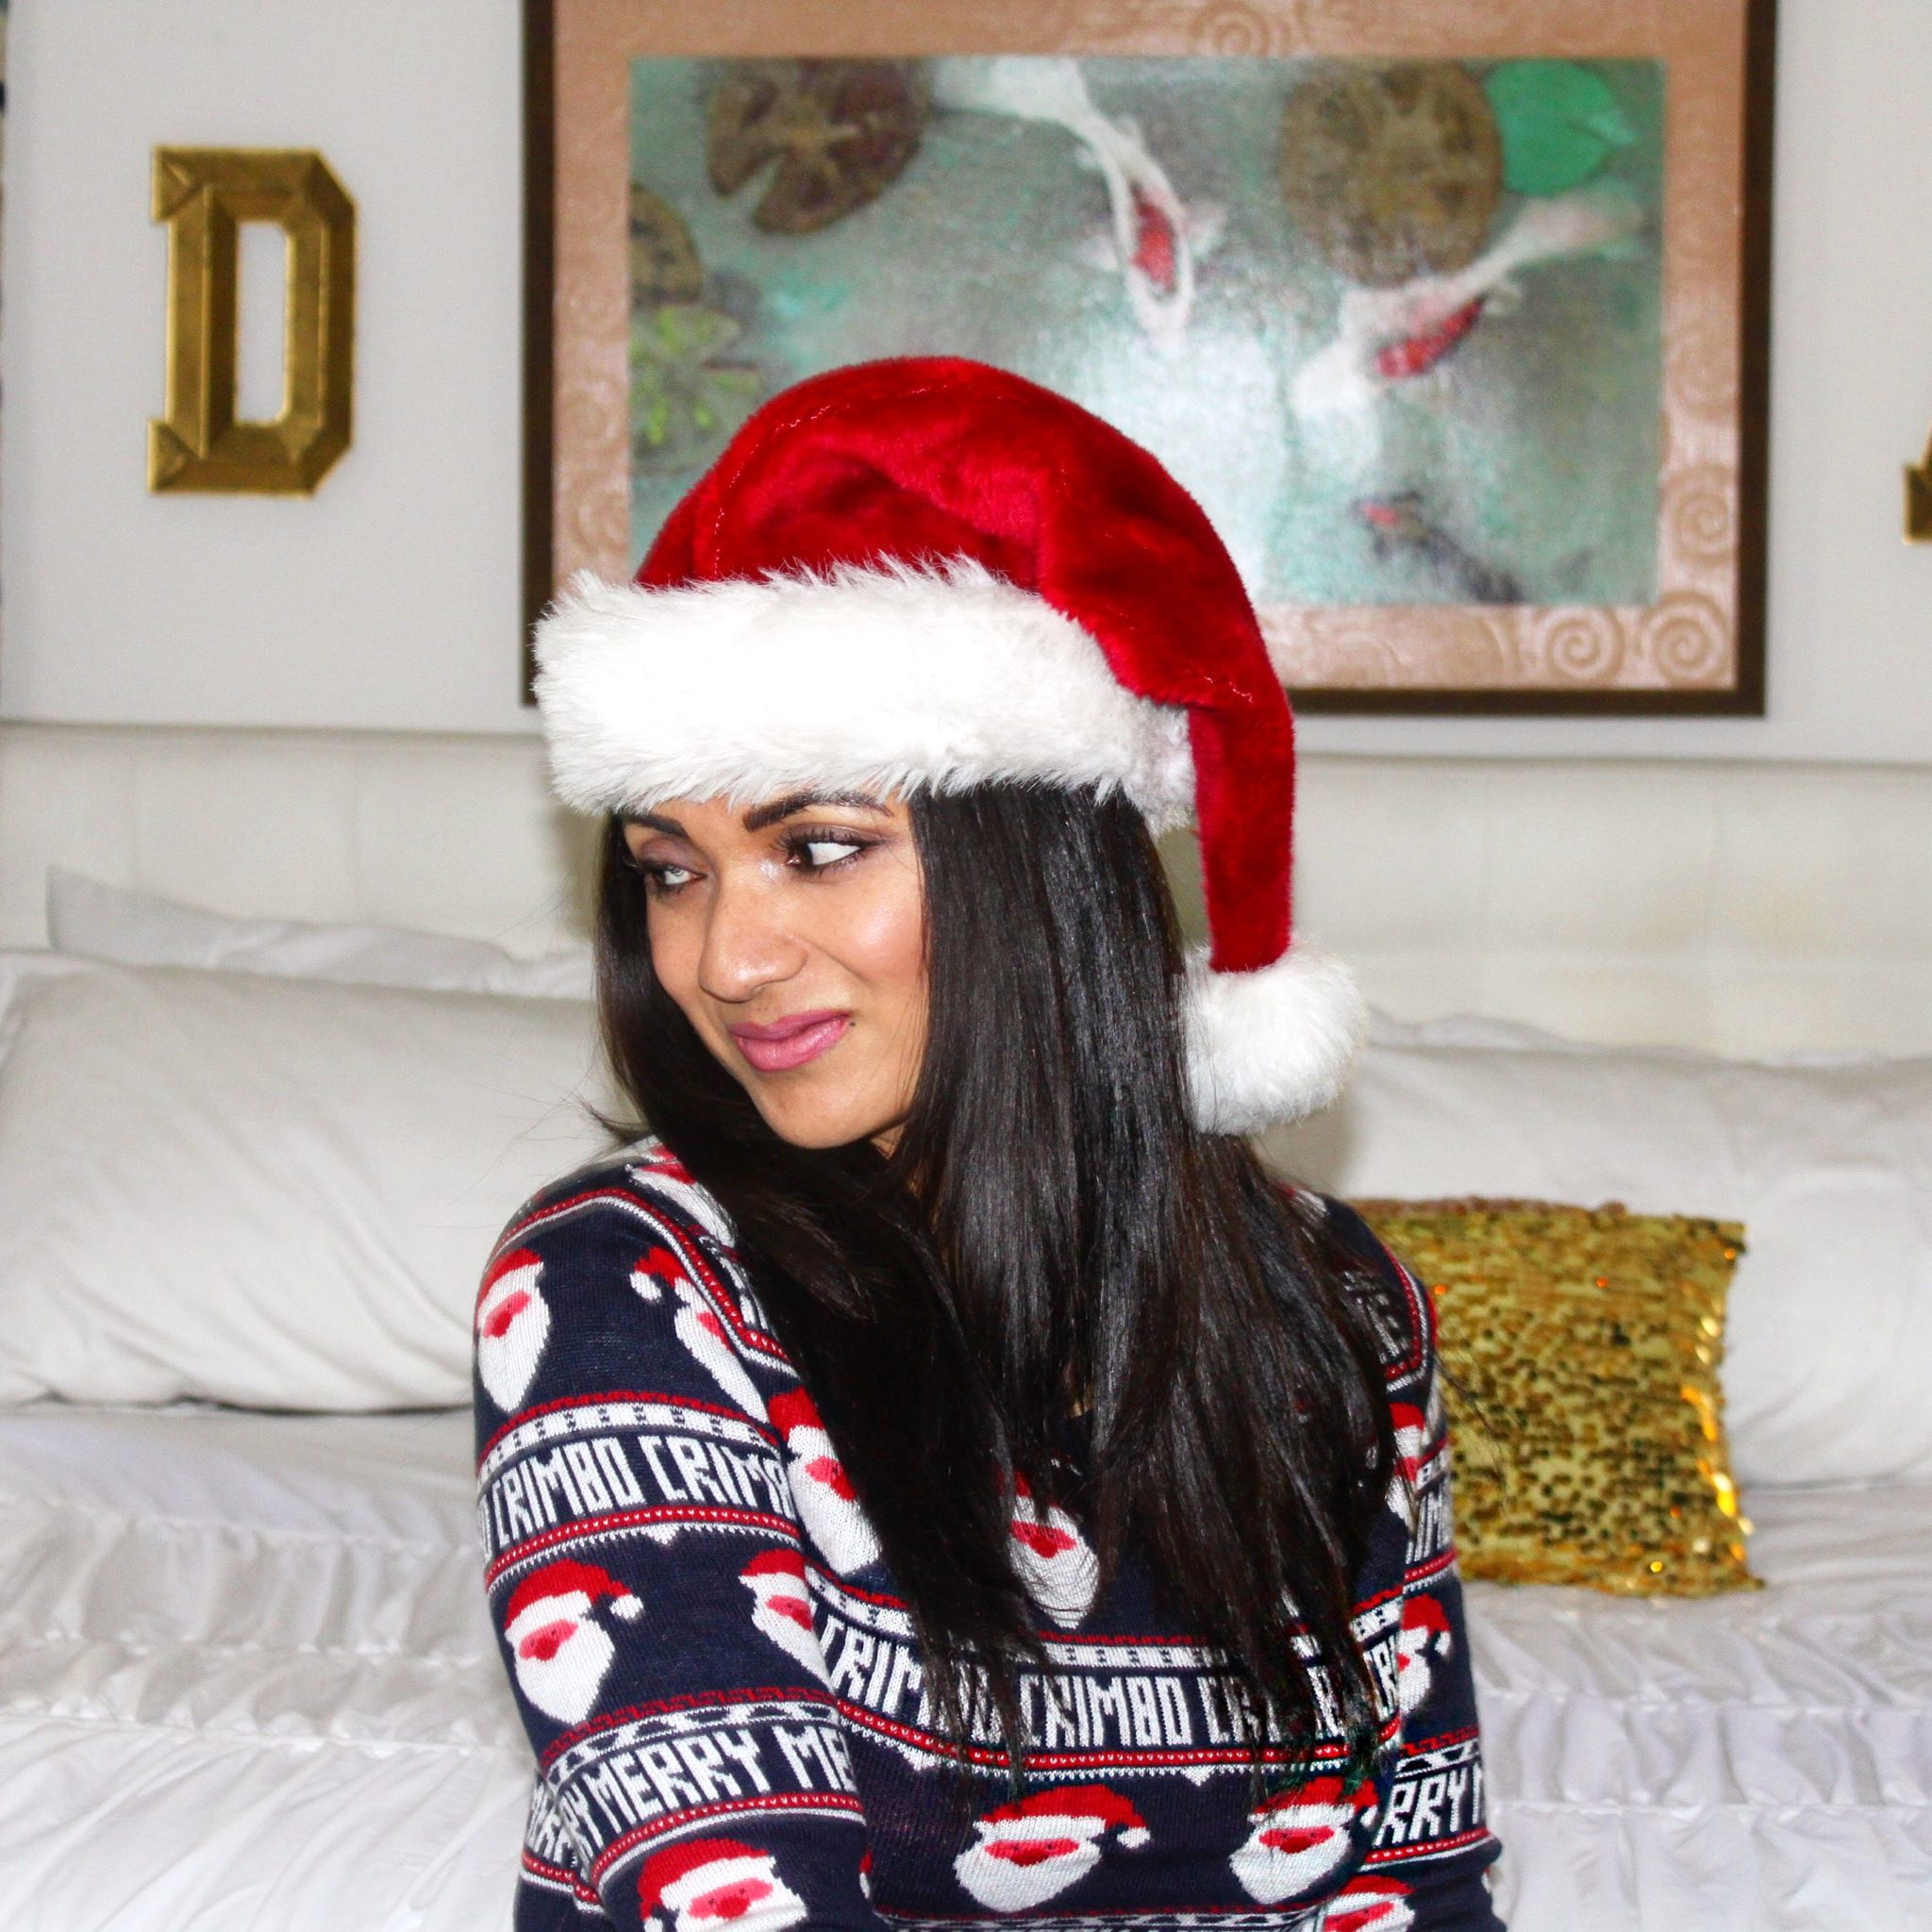 tothineownstylebetrue-ugly-sweater-party-ideas-2